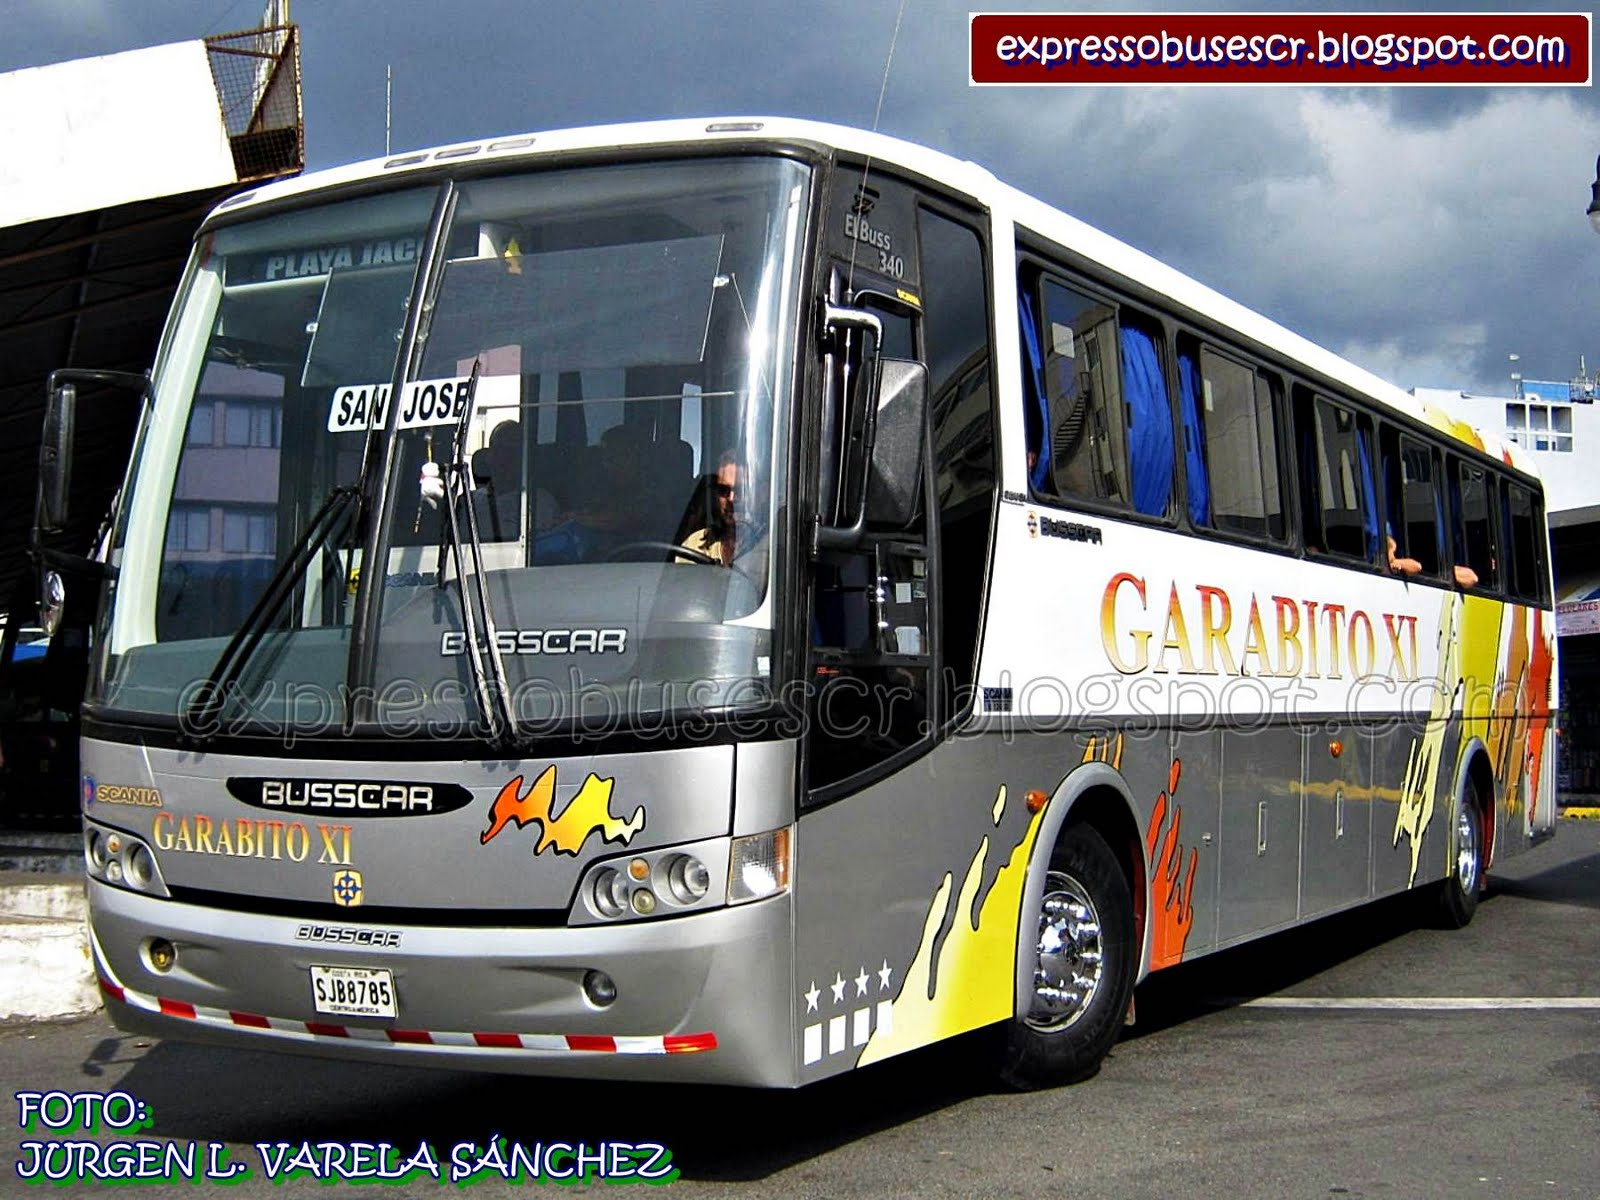 Scania busscar photo - 3